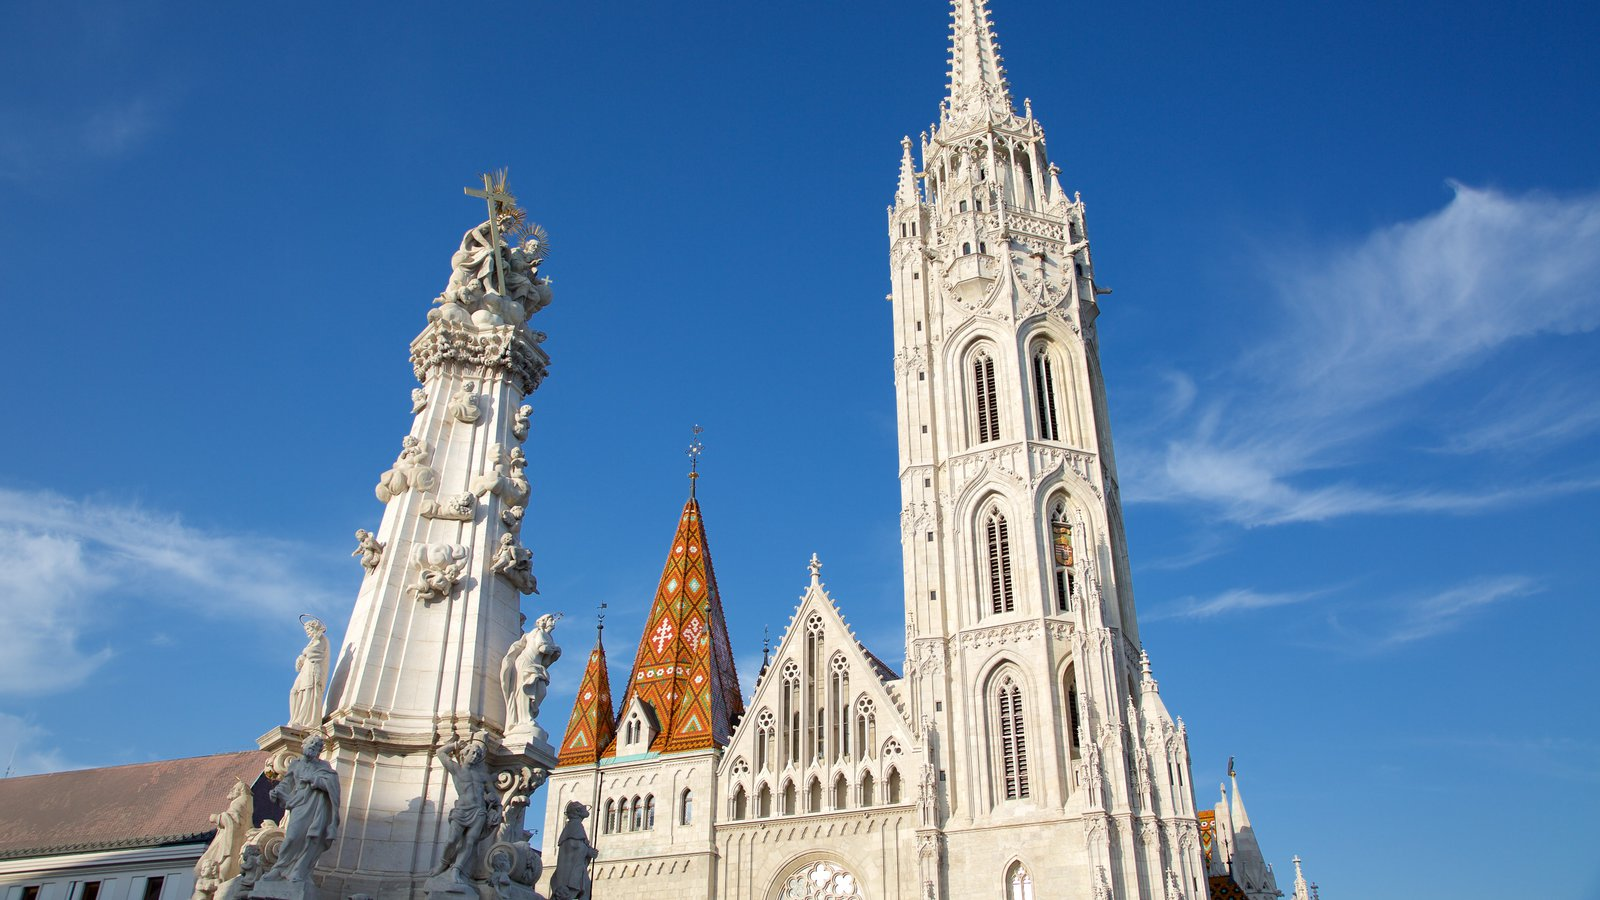 Matthias Church showing heritage architecture, religious elements and a church or cathedral